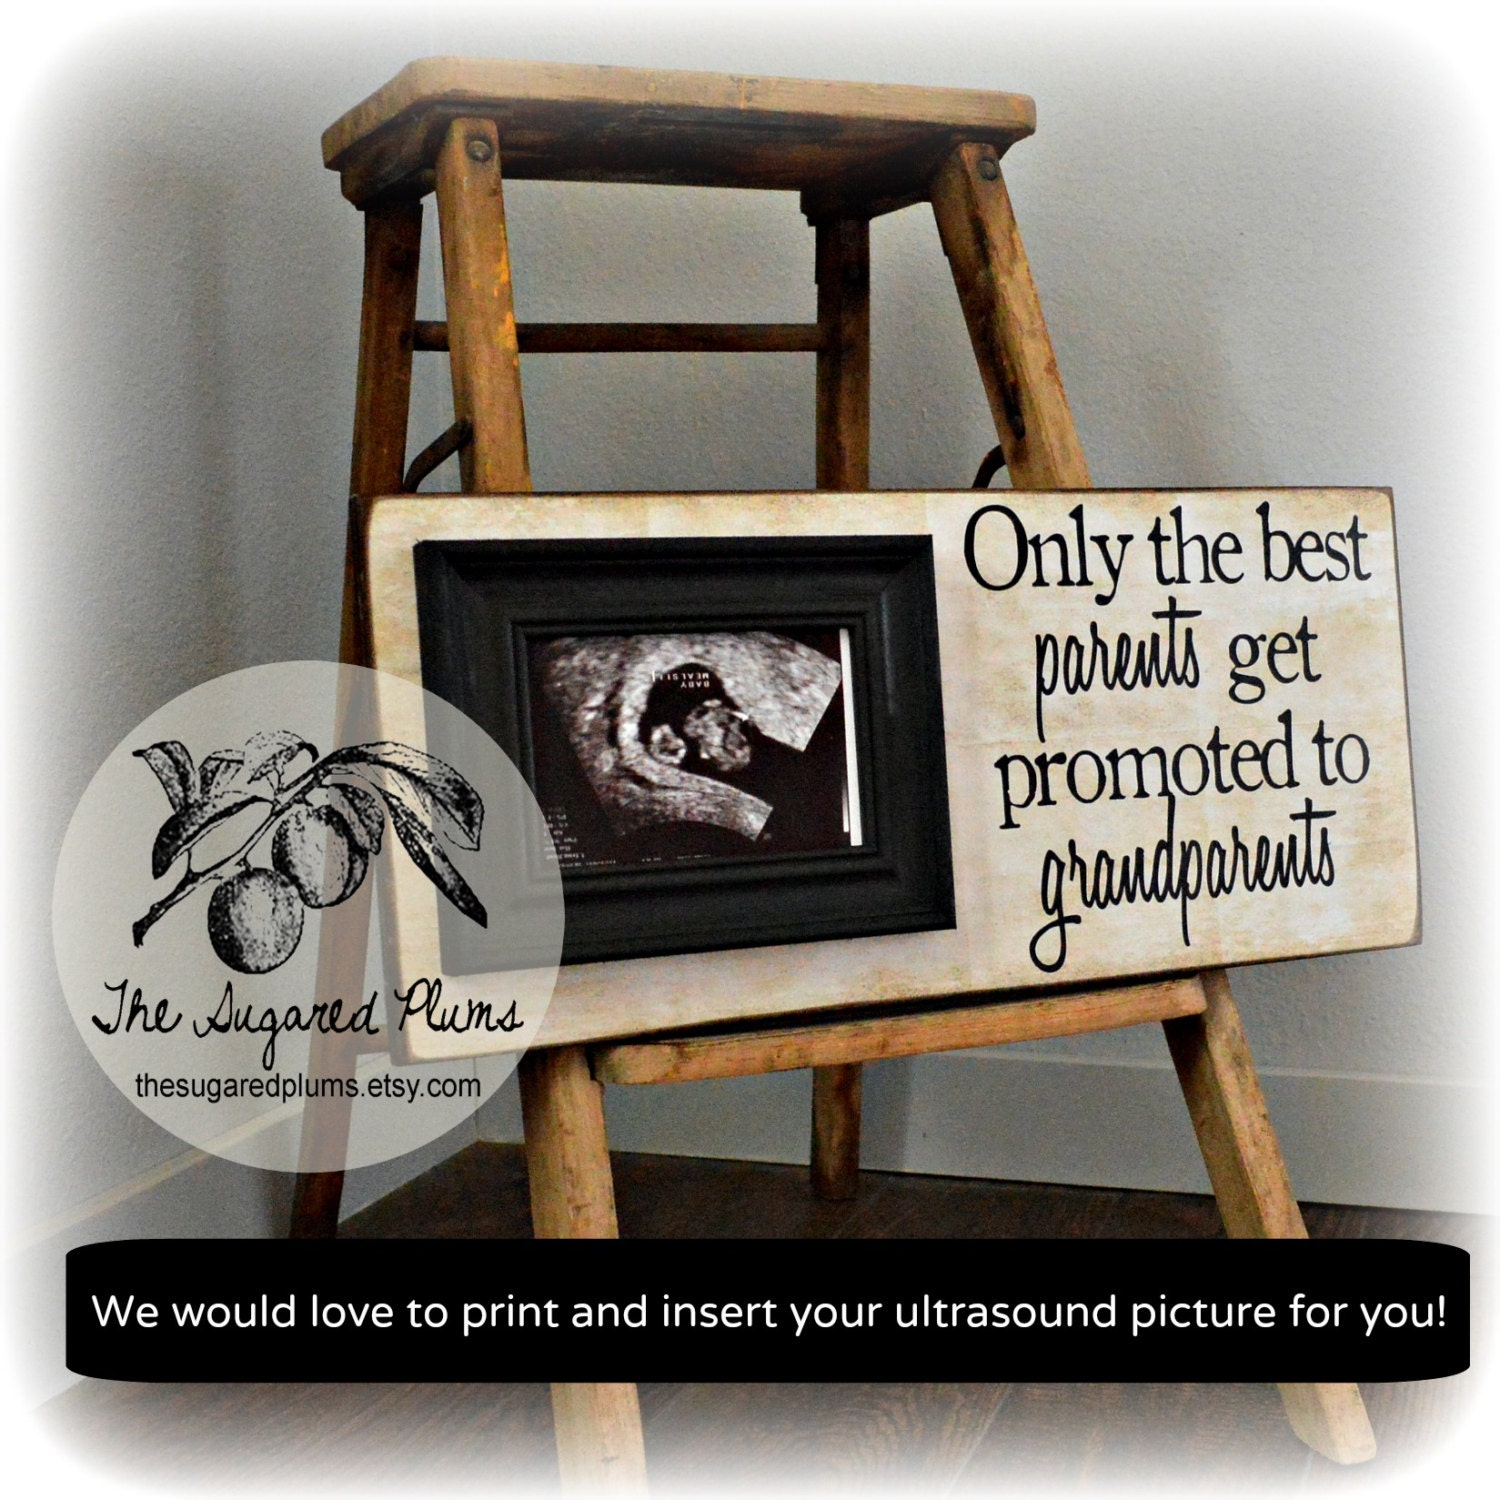 Pregnancy expecting announcement for grandparents ultrasound gift pregnancy expecting announcement for grandparents ultrasound gift picture frame grandparents gift expecting baby 8x20 the sugared plums jeuxipadfo Choice Image